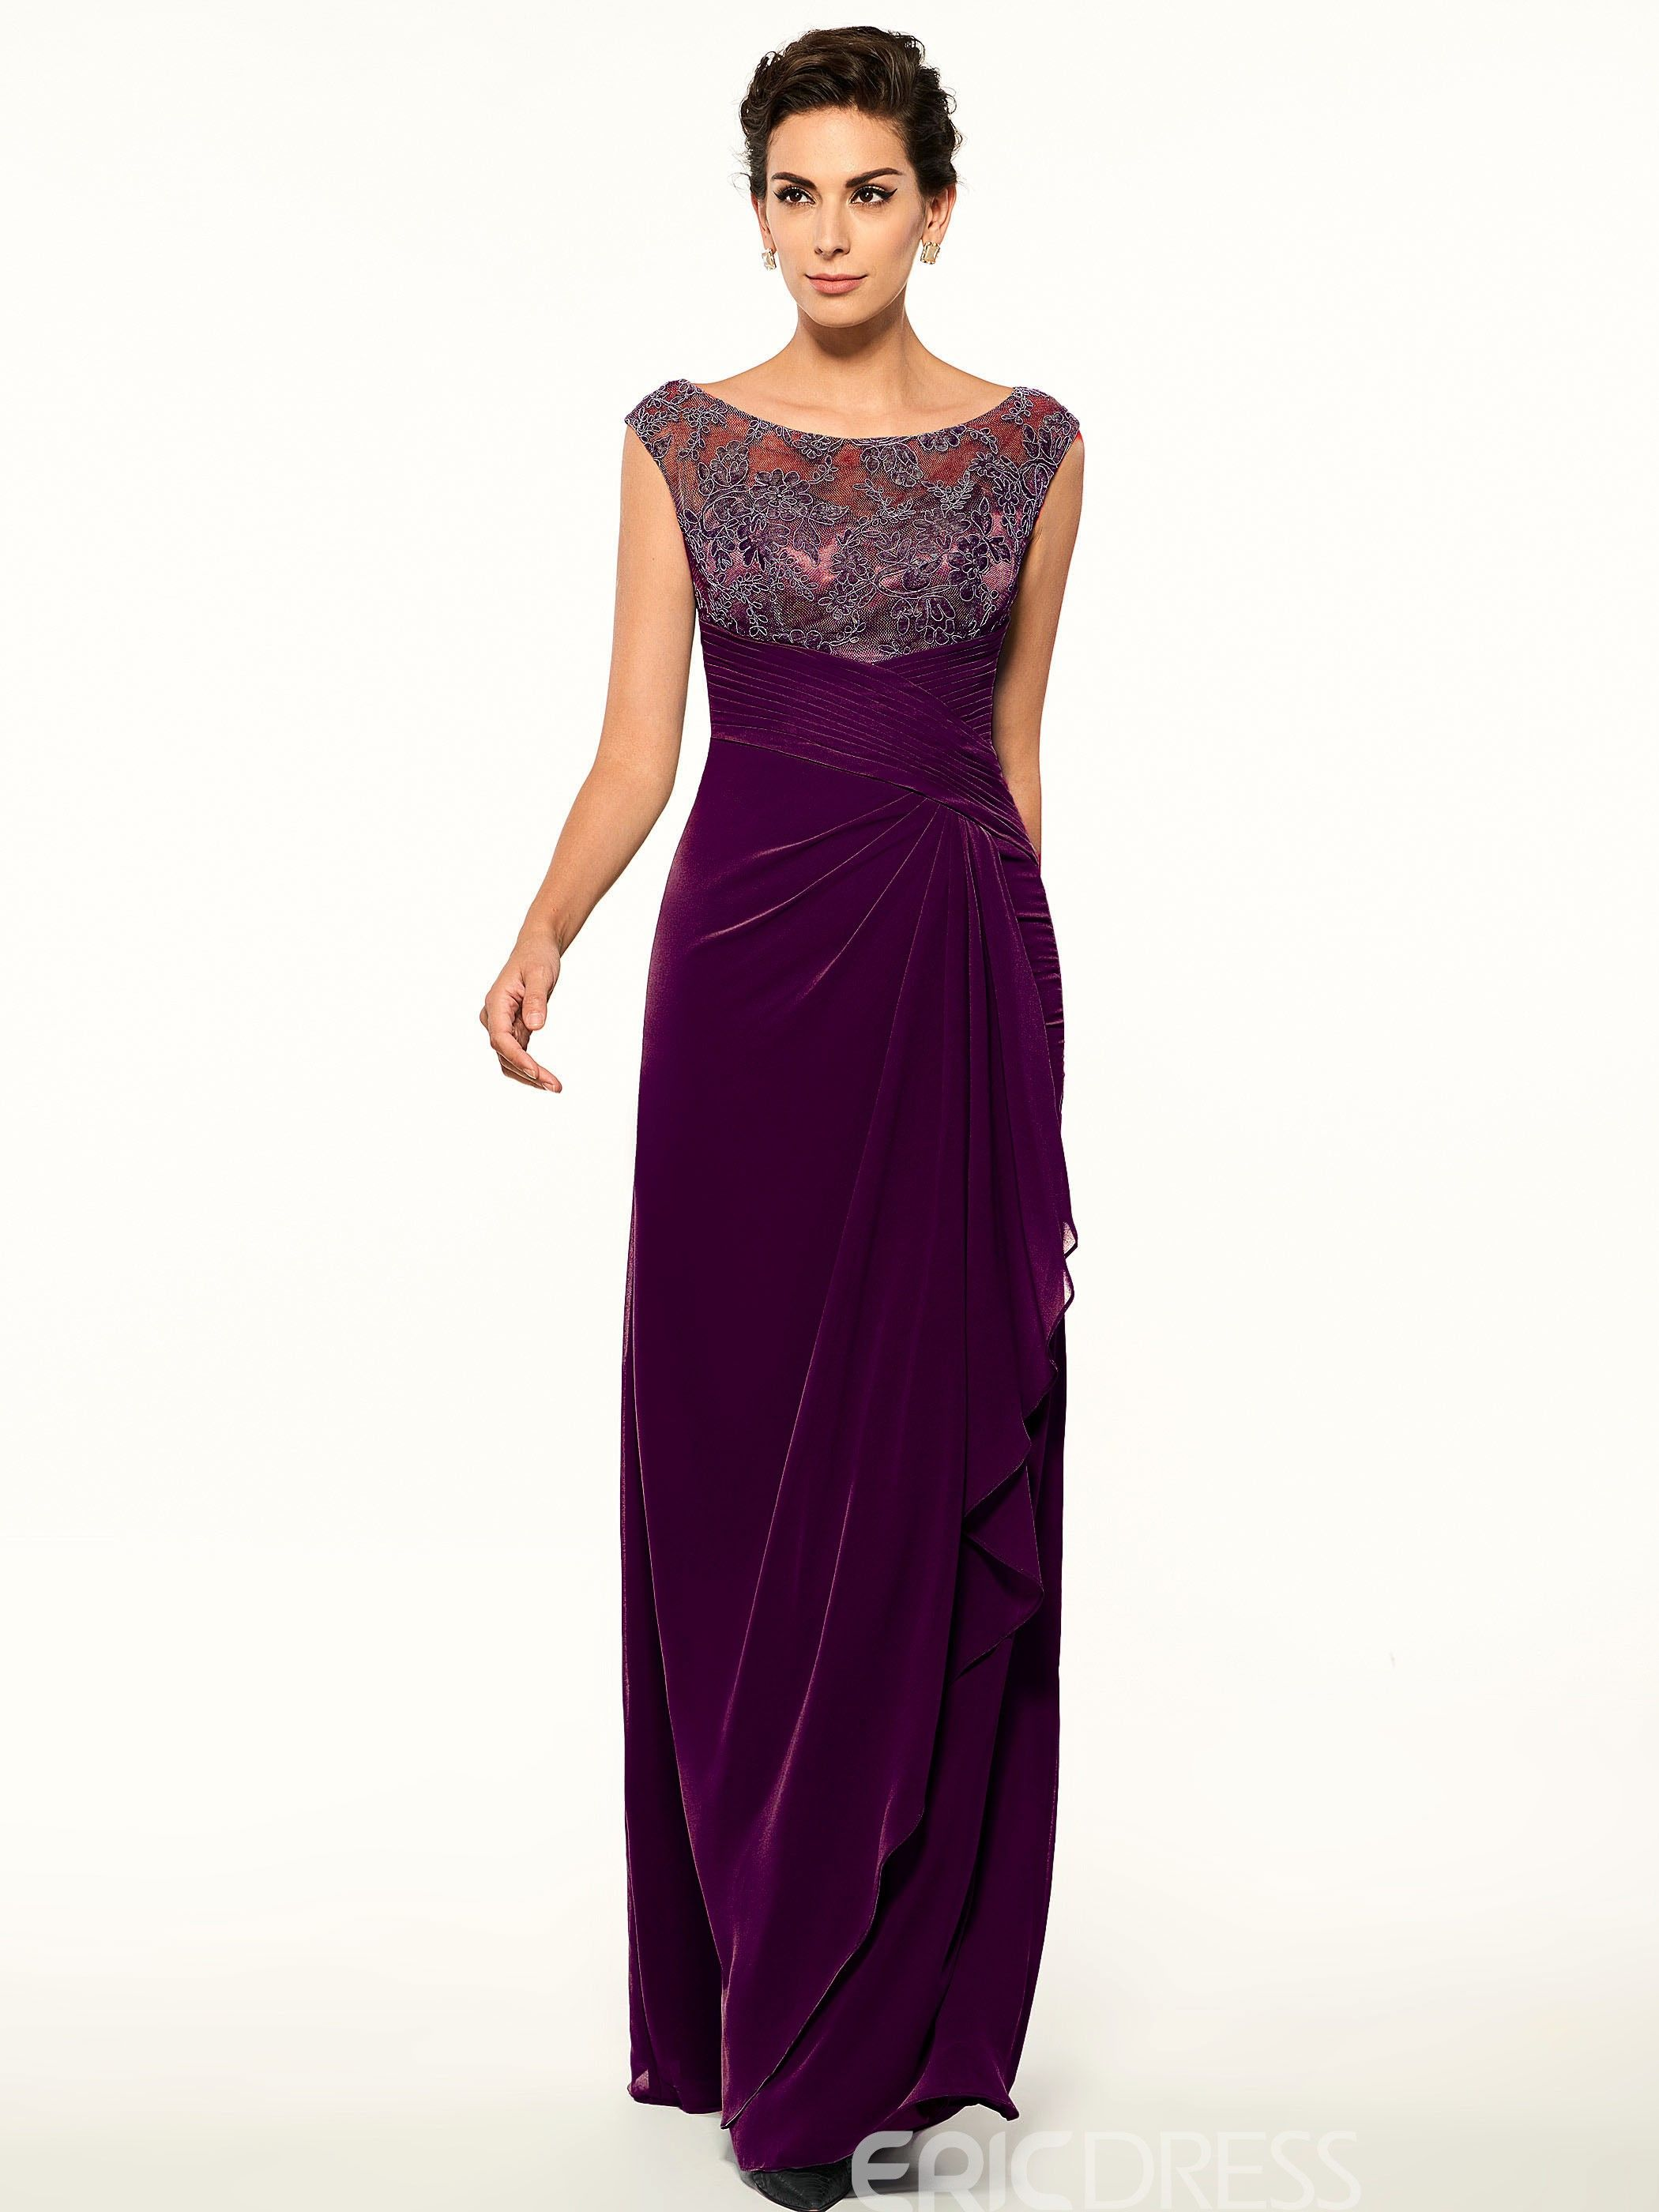 65014ae34c4 Ericdress Long Lace Mother of the Bride Dress 12747599 - Ericdress ...